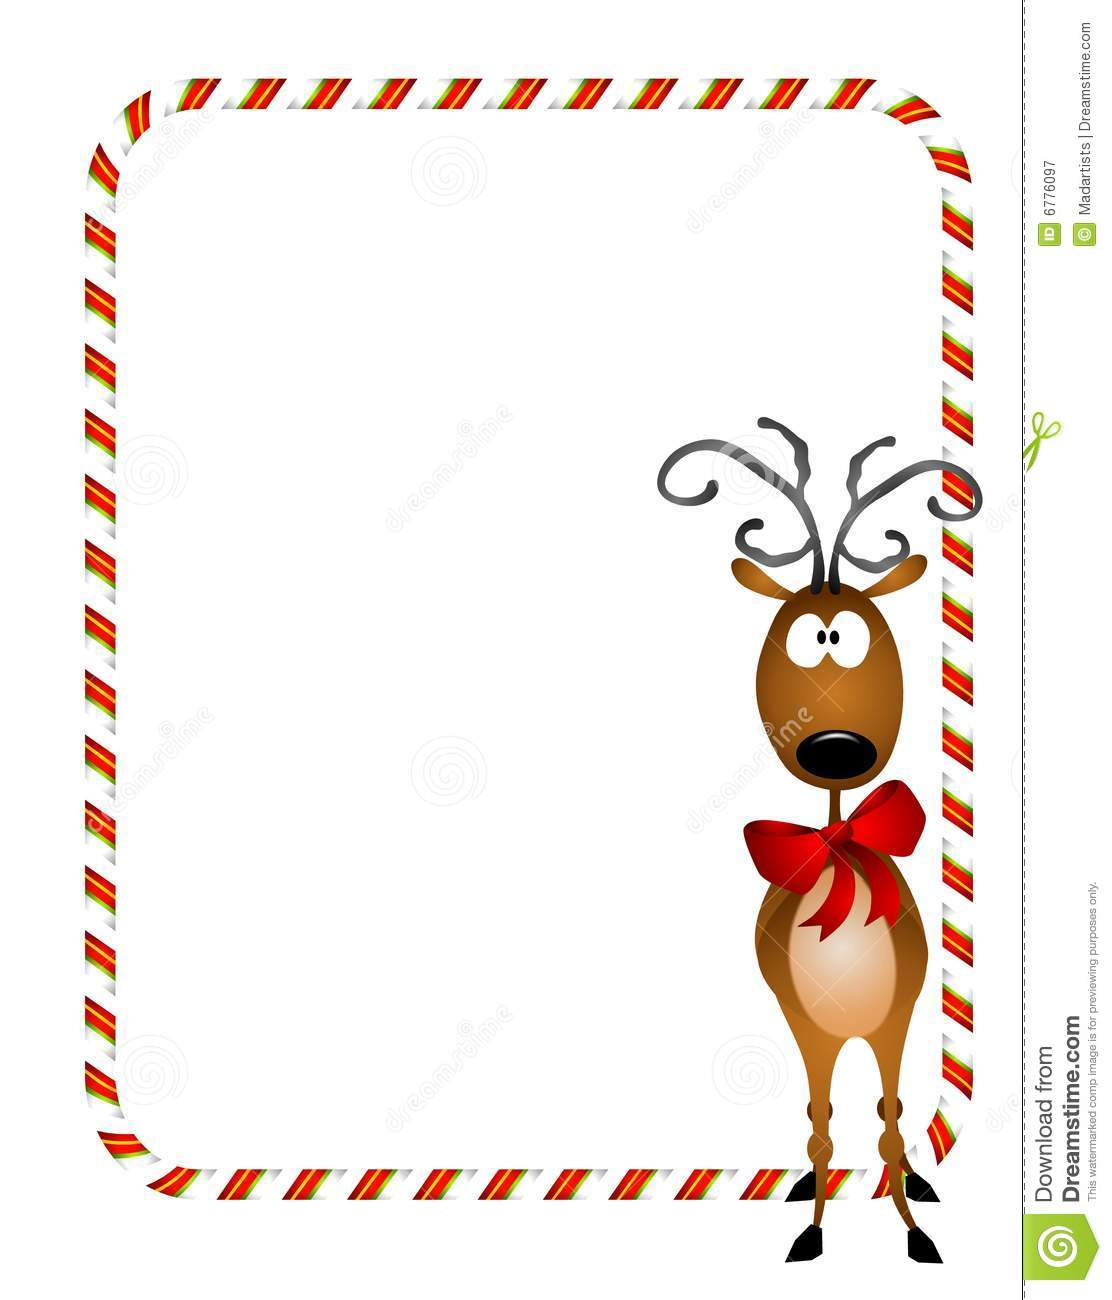 Reindeer Xmas Border Royalty Free Stock Photography - Image: 6776097